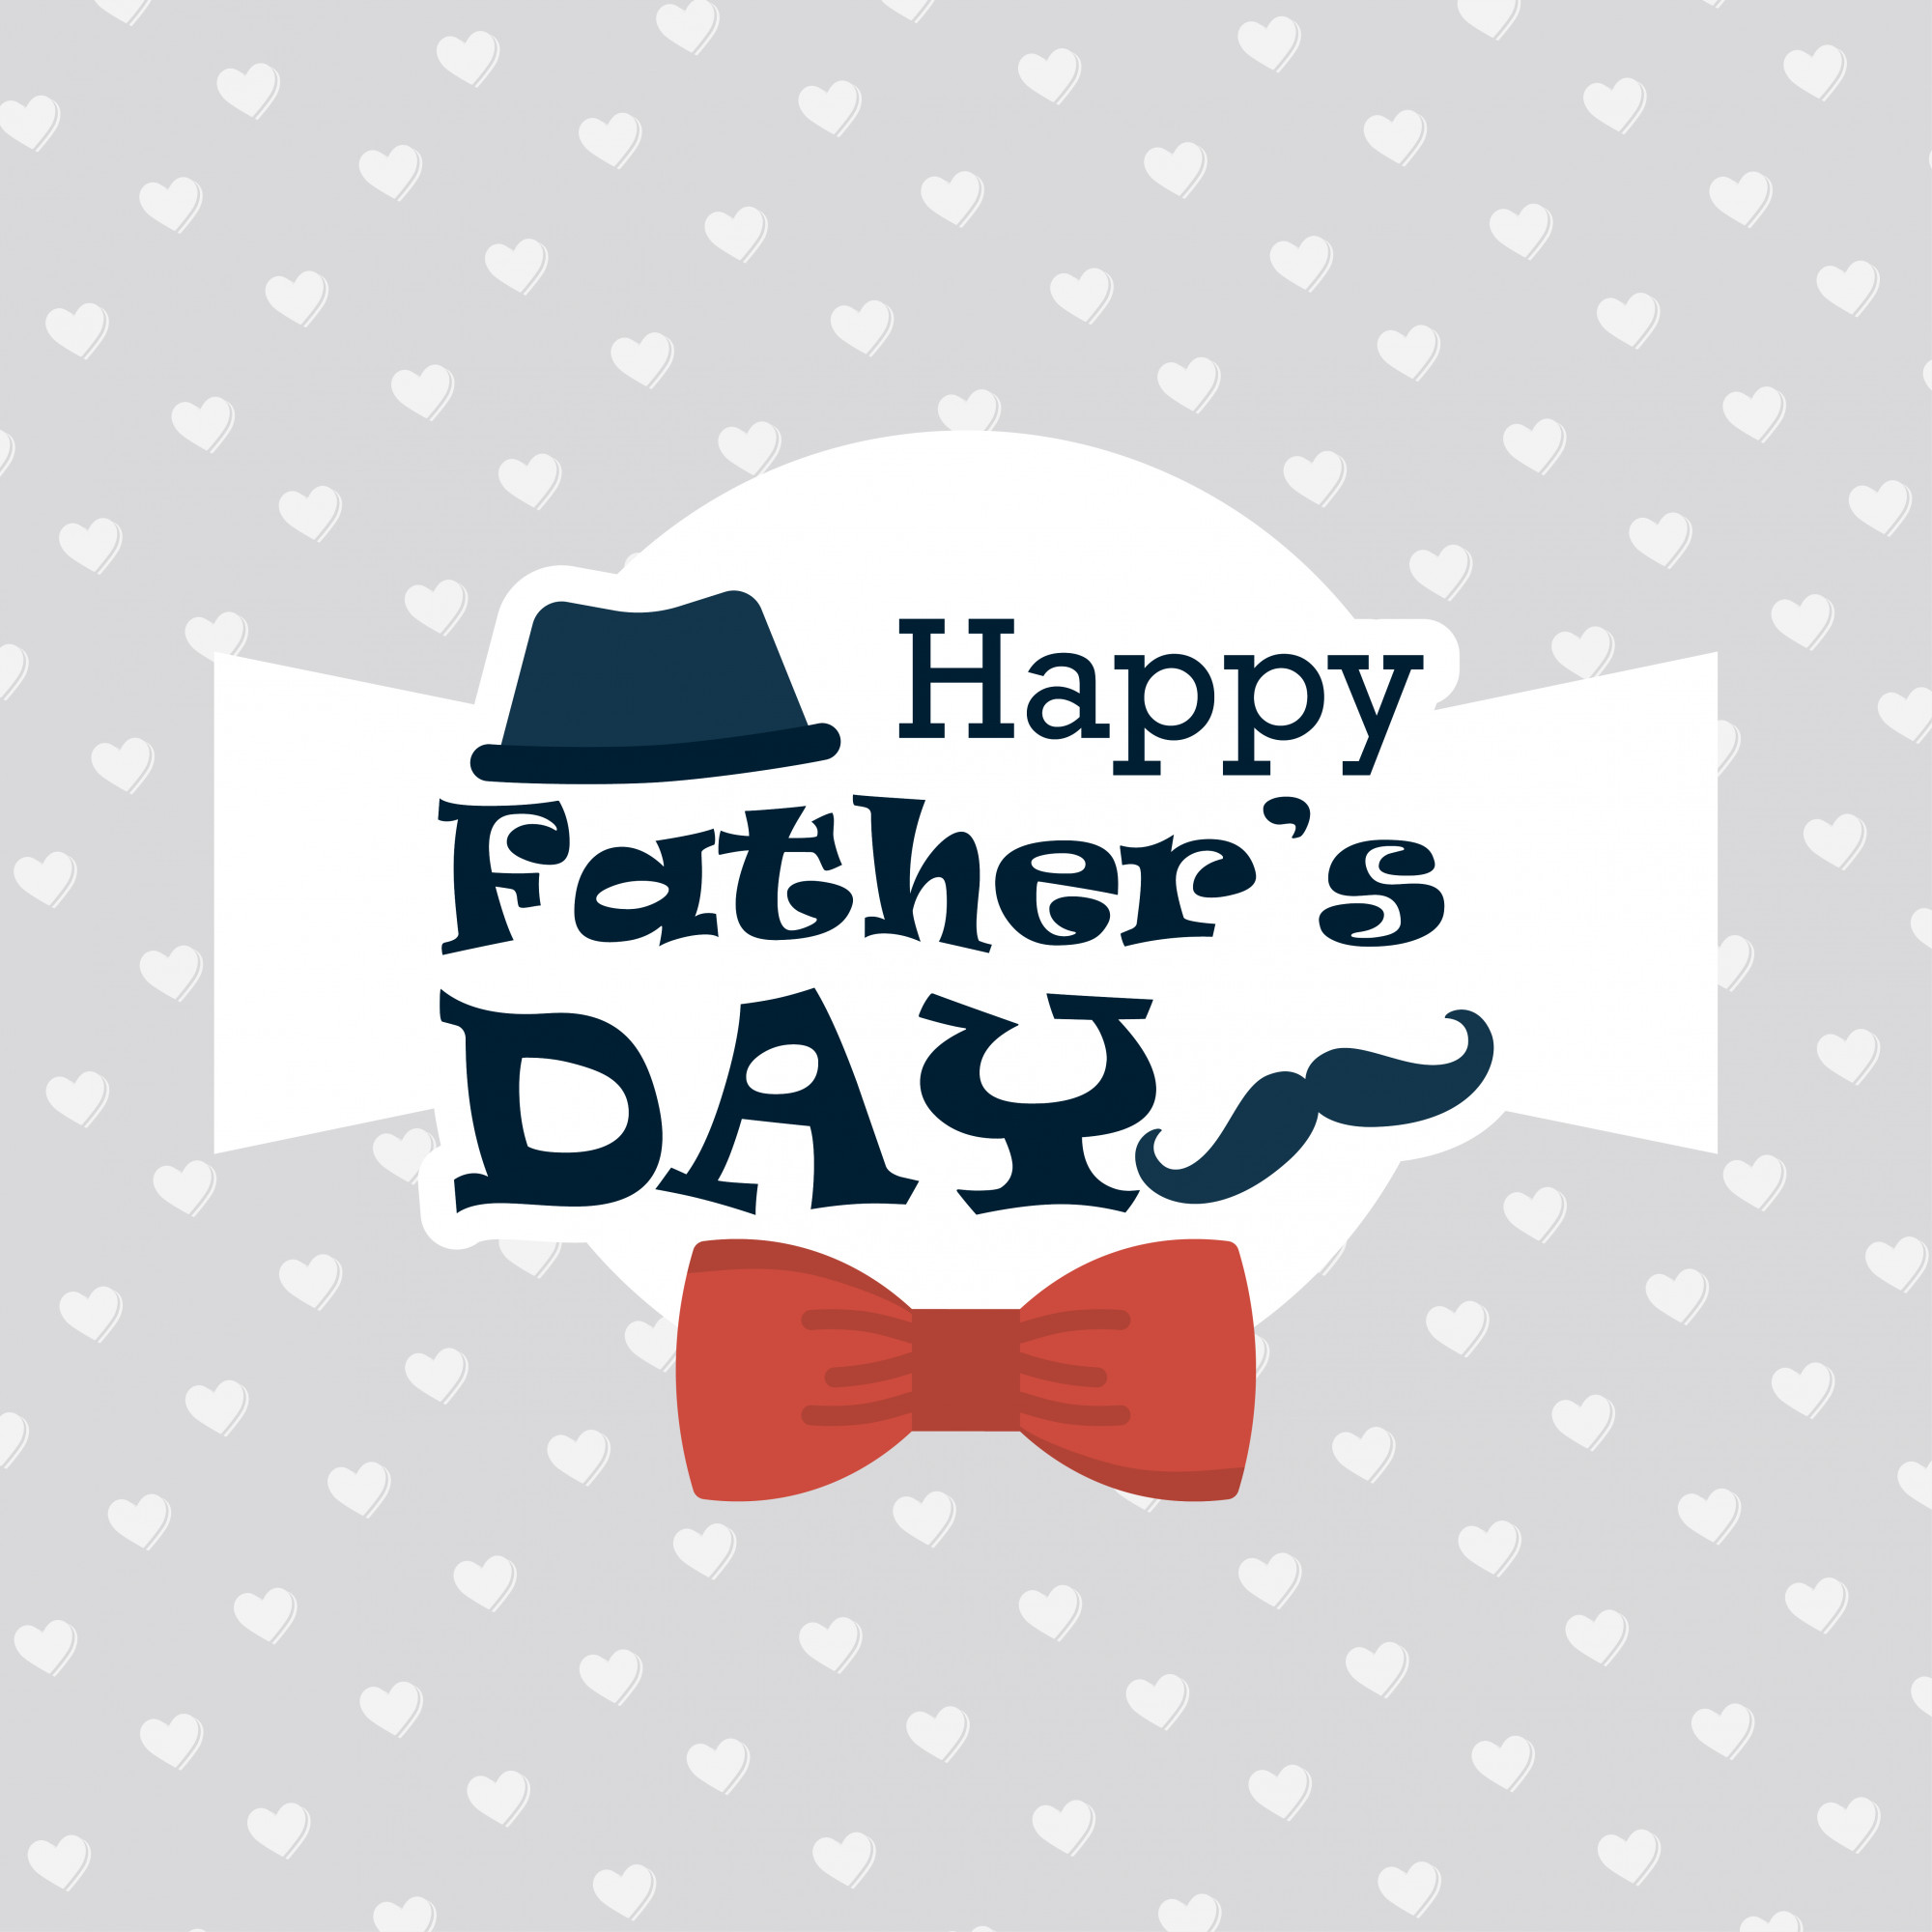 Happy Father's day greeting card with pattern background